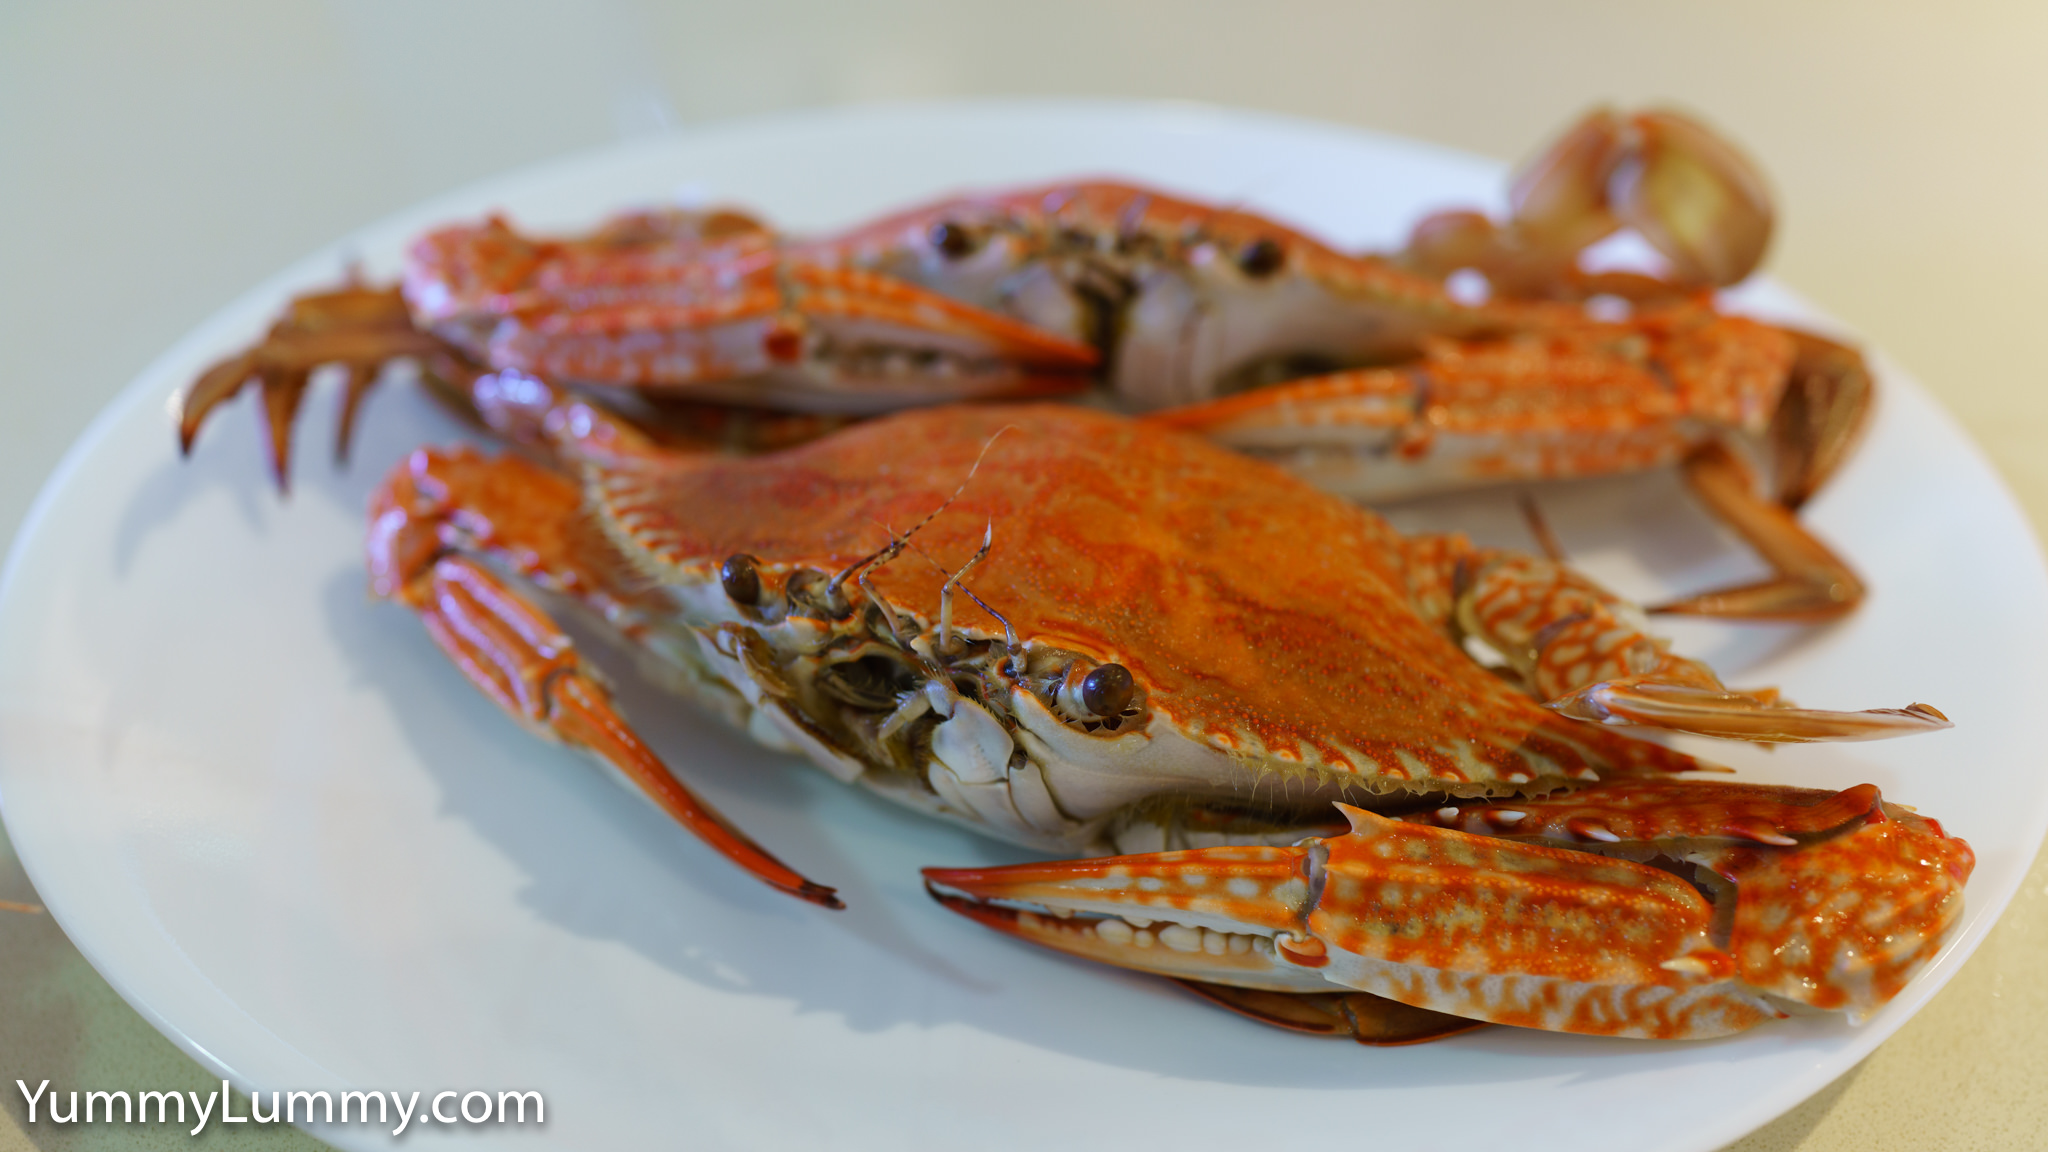 Fresh blue swimmer crabs (sand crabs) purchased from Morgan's Seafood. Gary Lum.